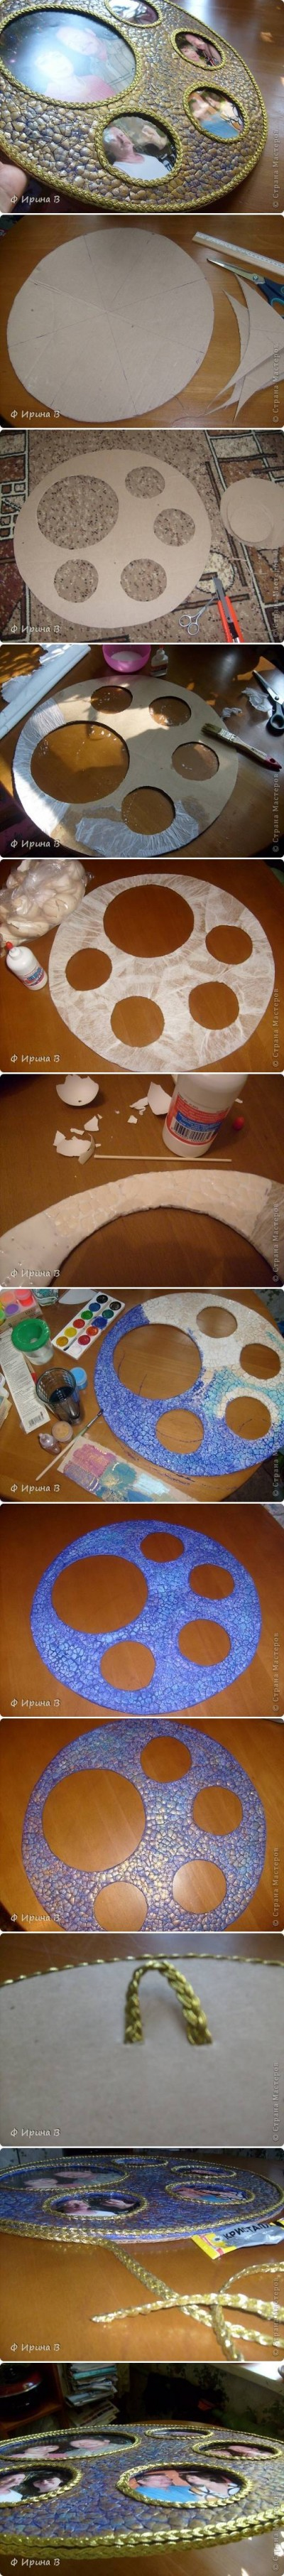 How to make Eggshell Panorama Frame step bys tep DIY instructions